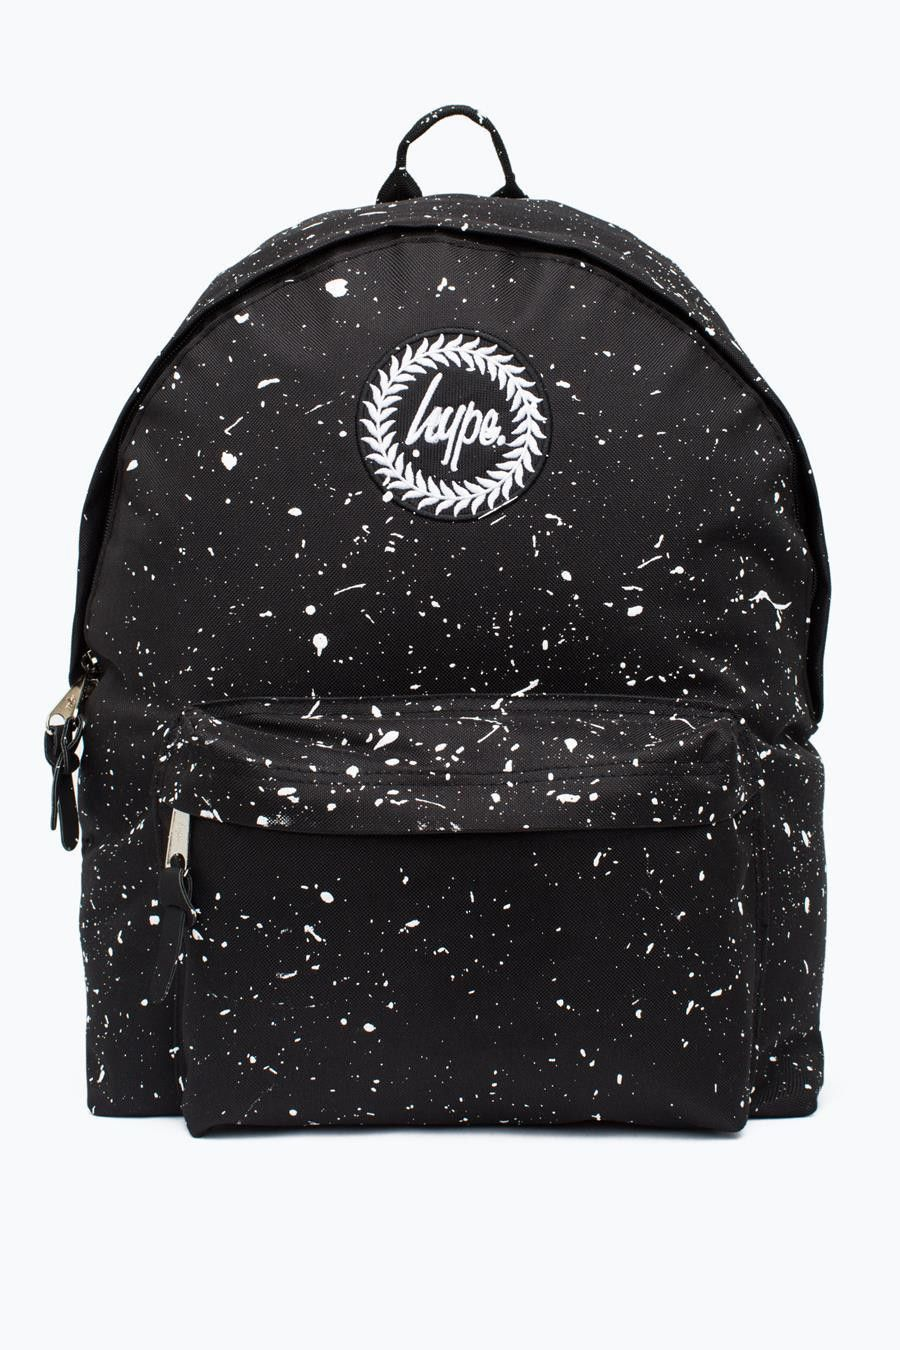 Hype Black With White Speckle Backpack  12a87bebbb4e3